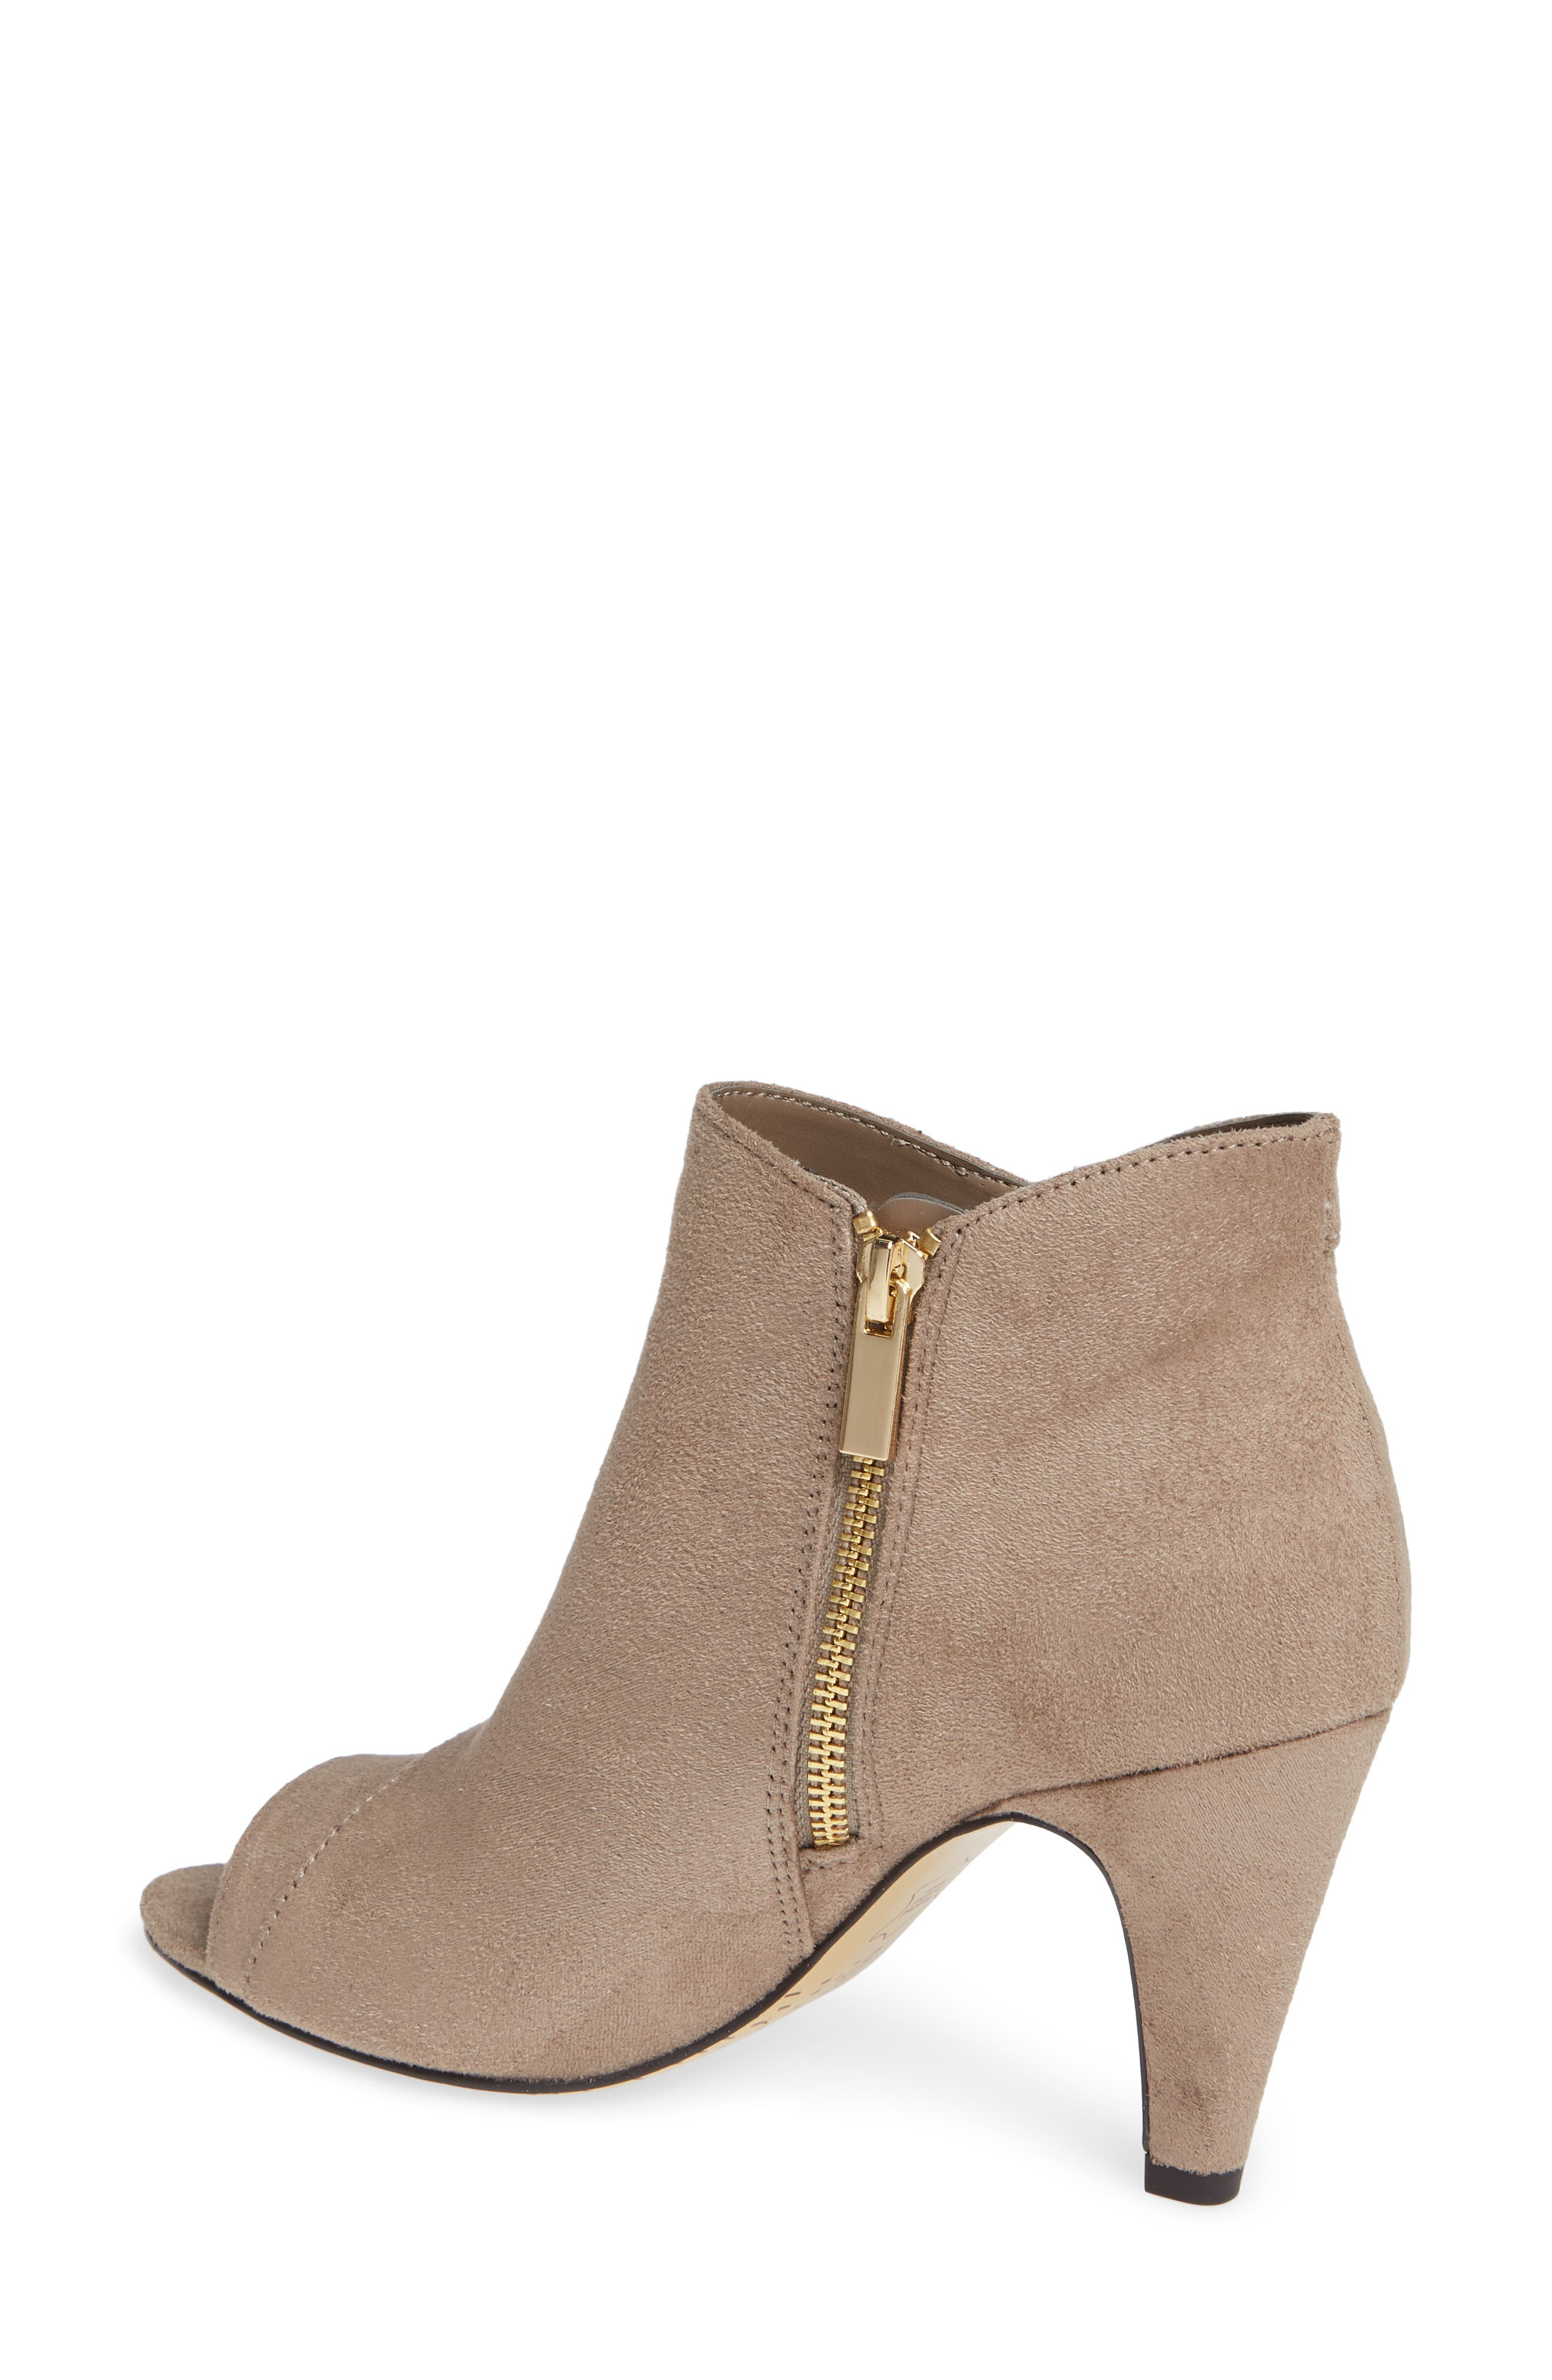 Nicolette Ruffle Dress Bootie,                             Alternate thumbnail 2, color,                             STONE SUEDE